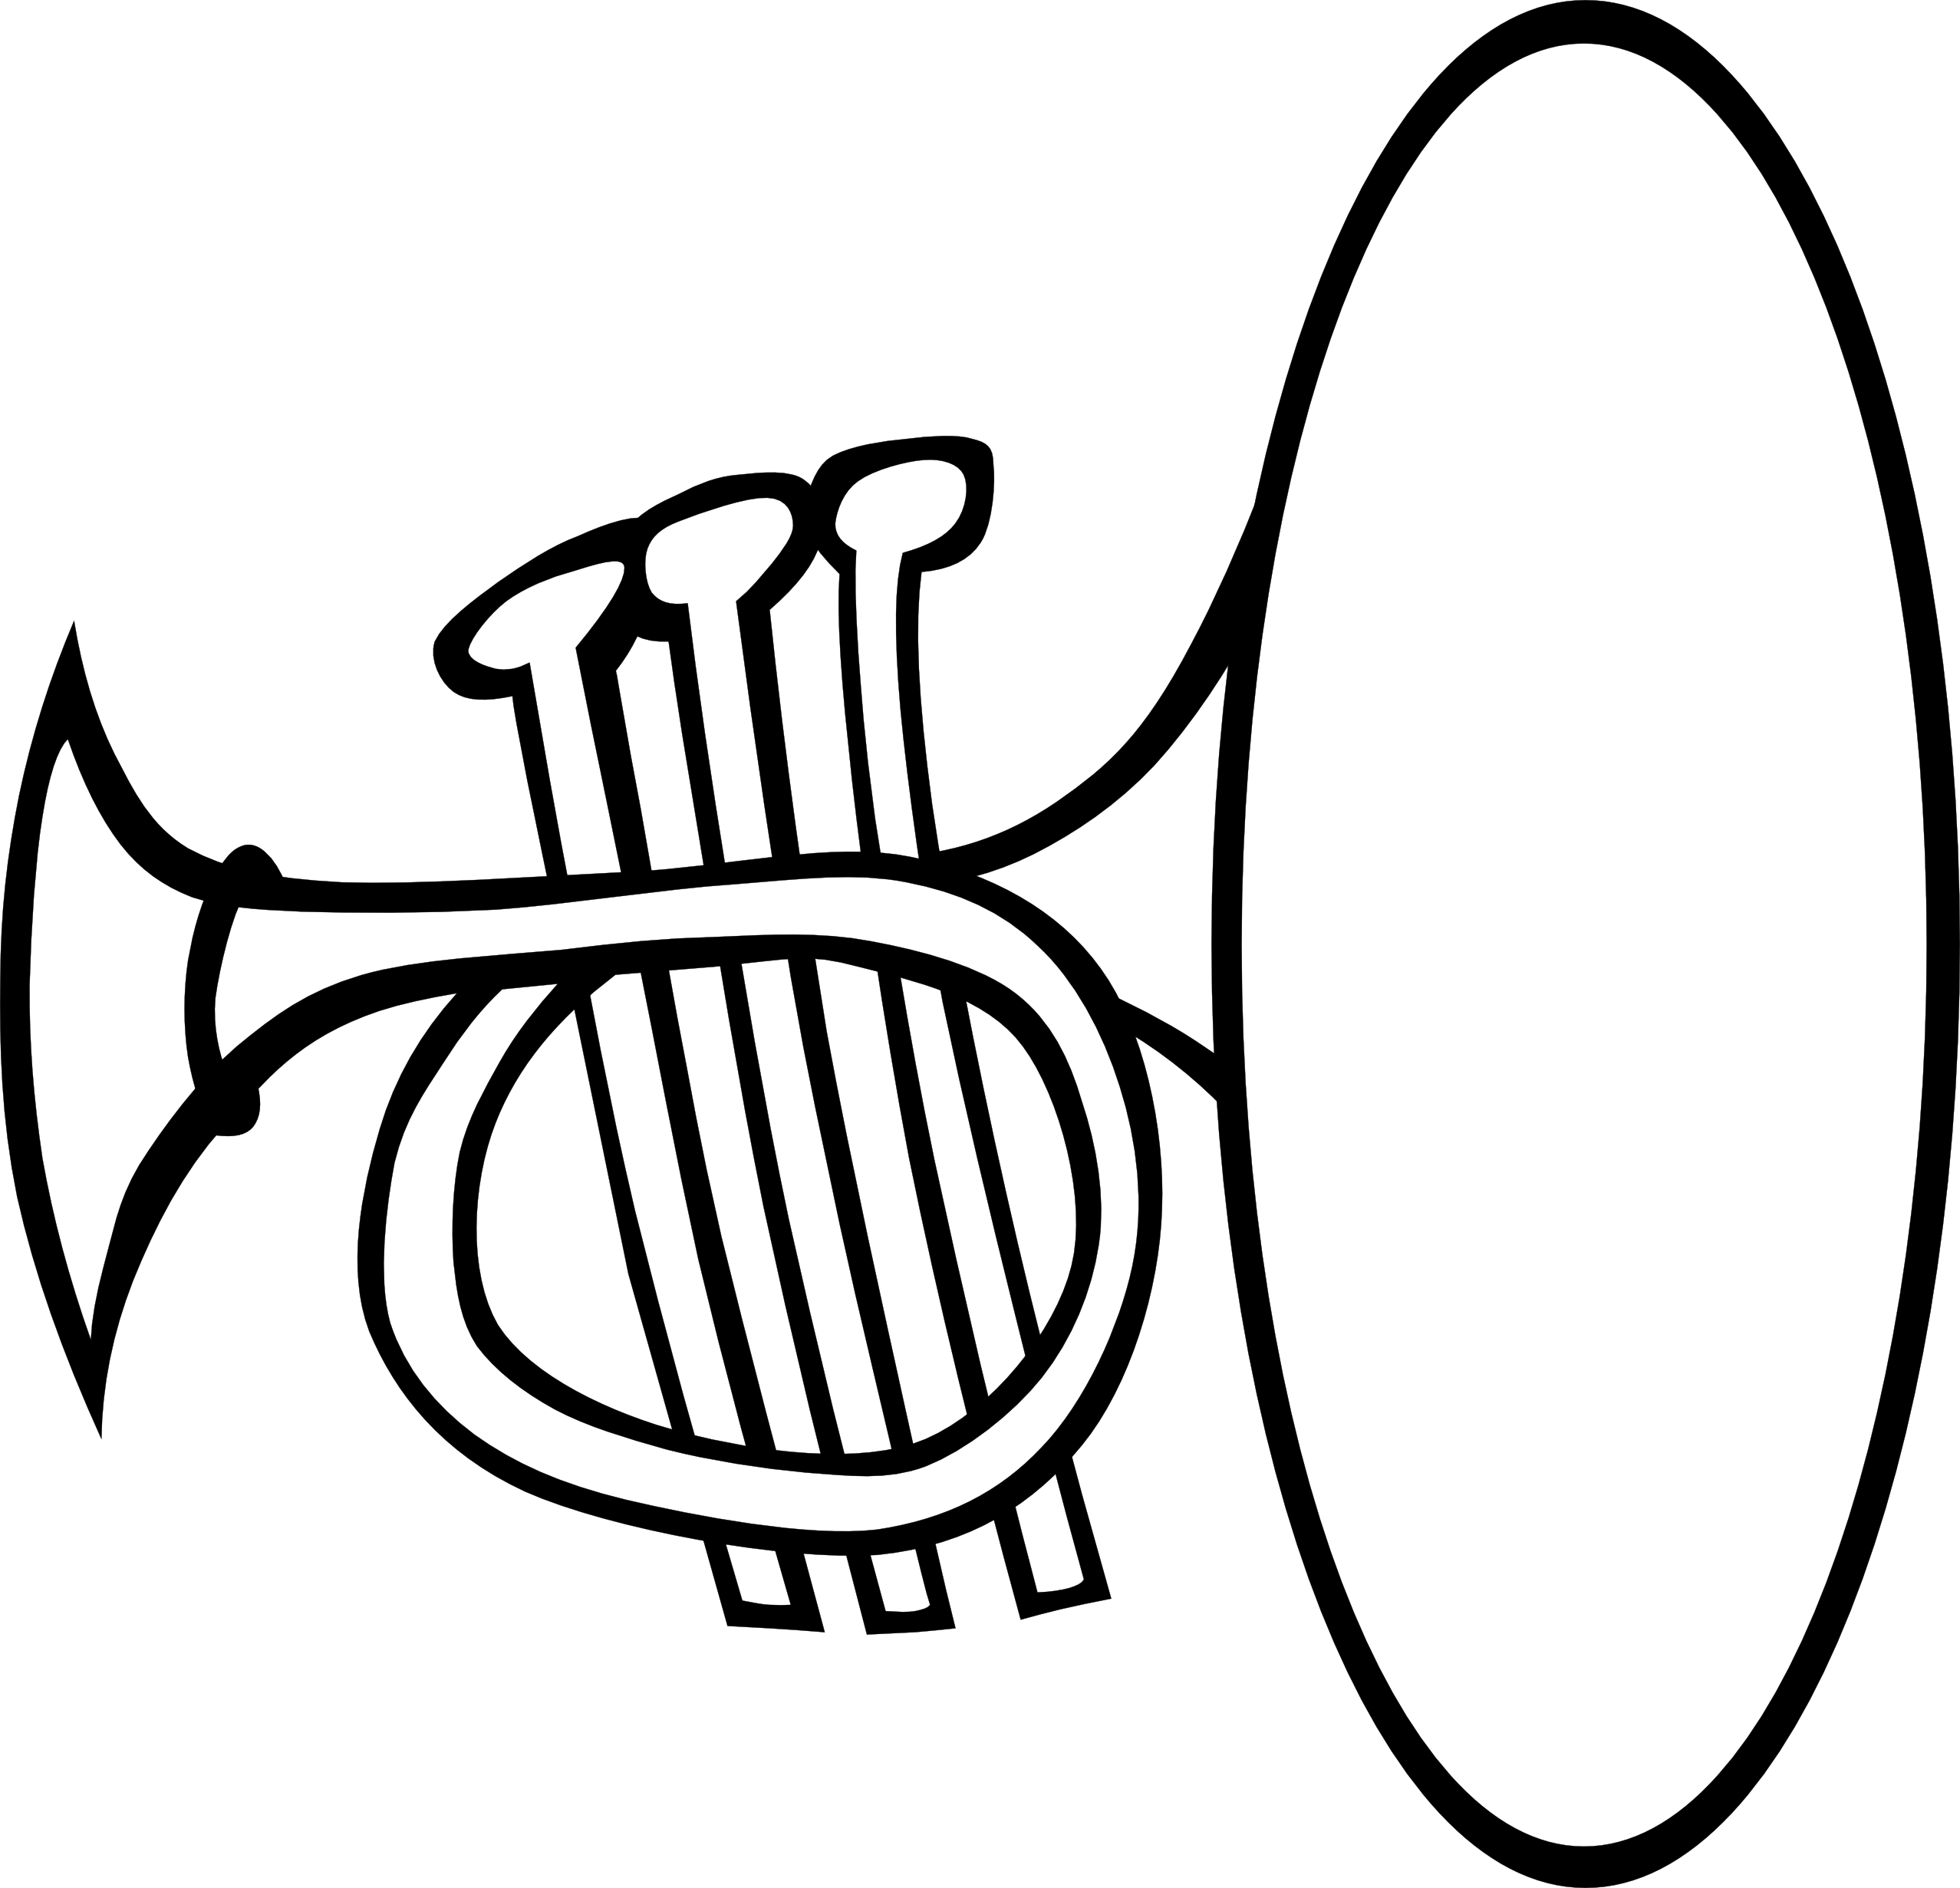 Music Clipart Black And White & Music Black And White Clip Art.